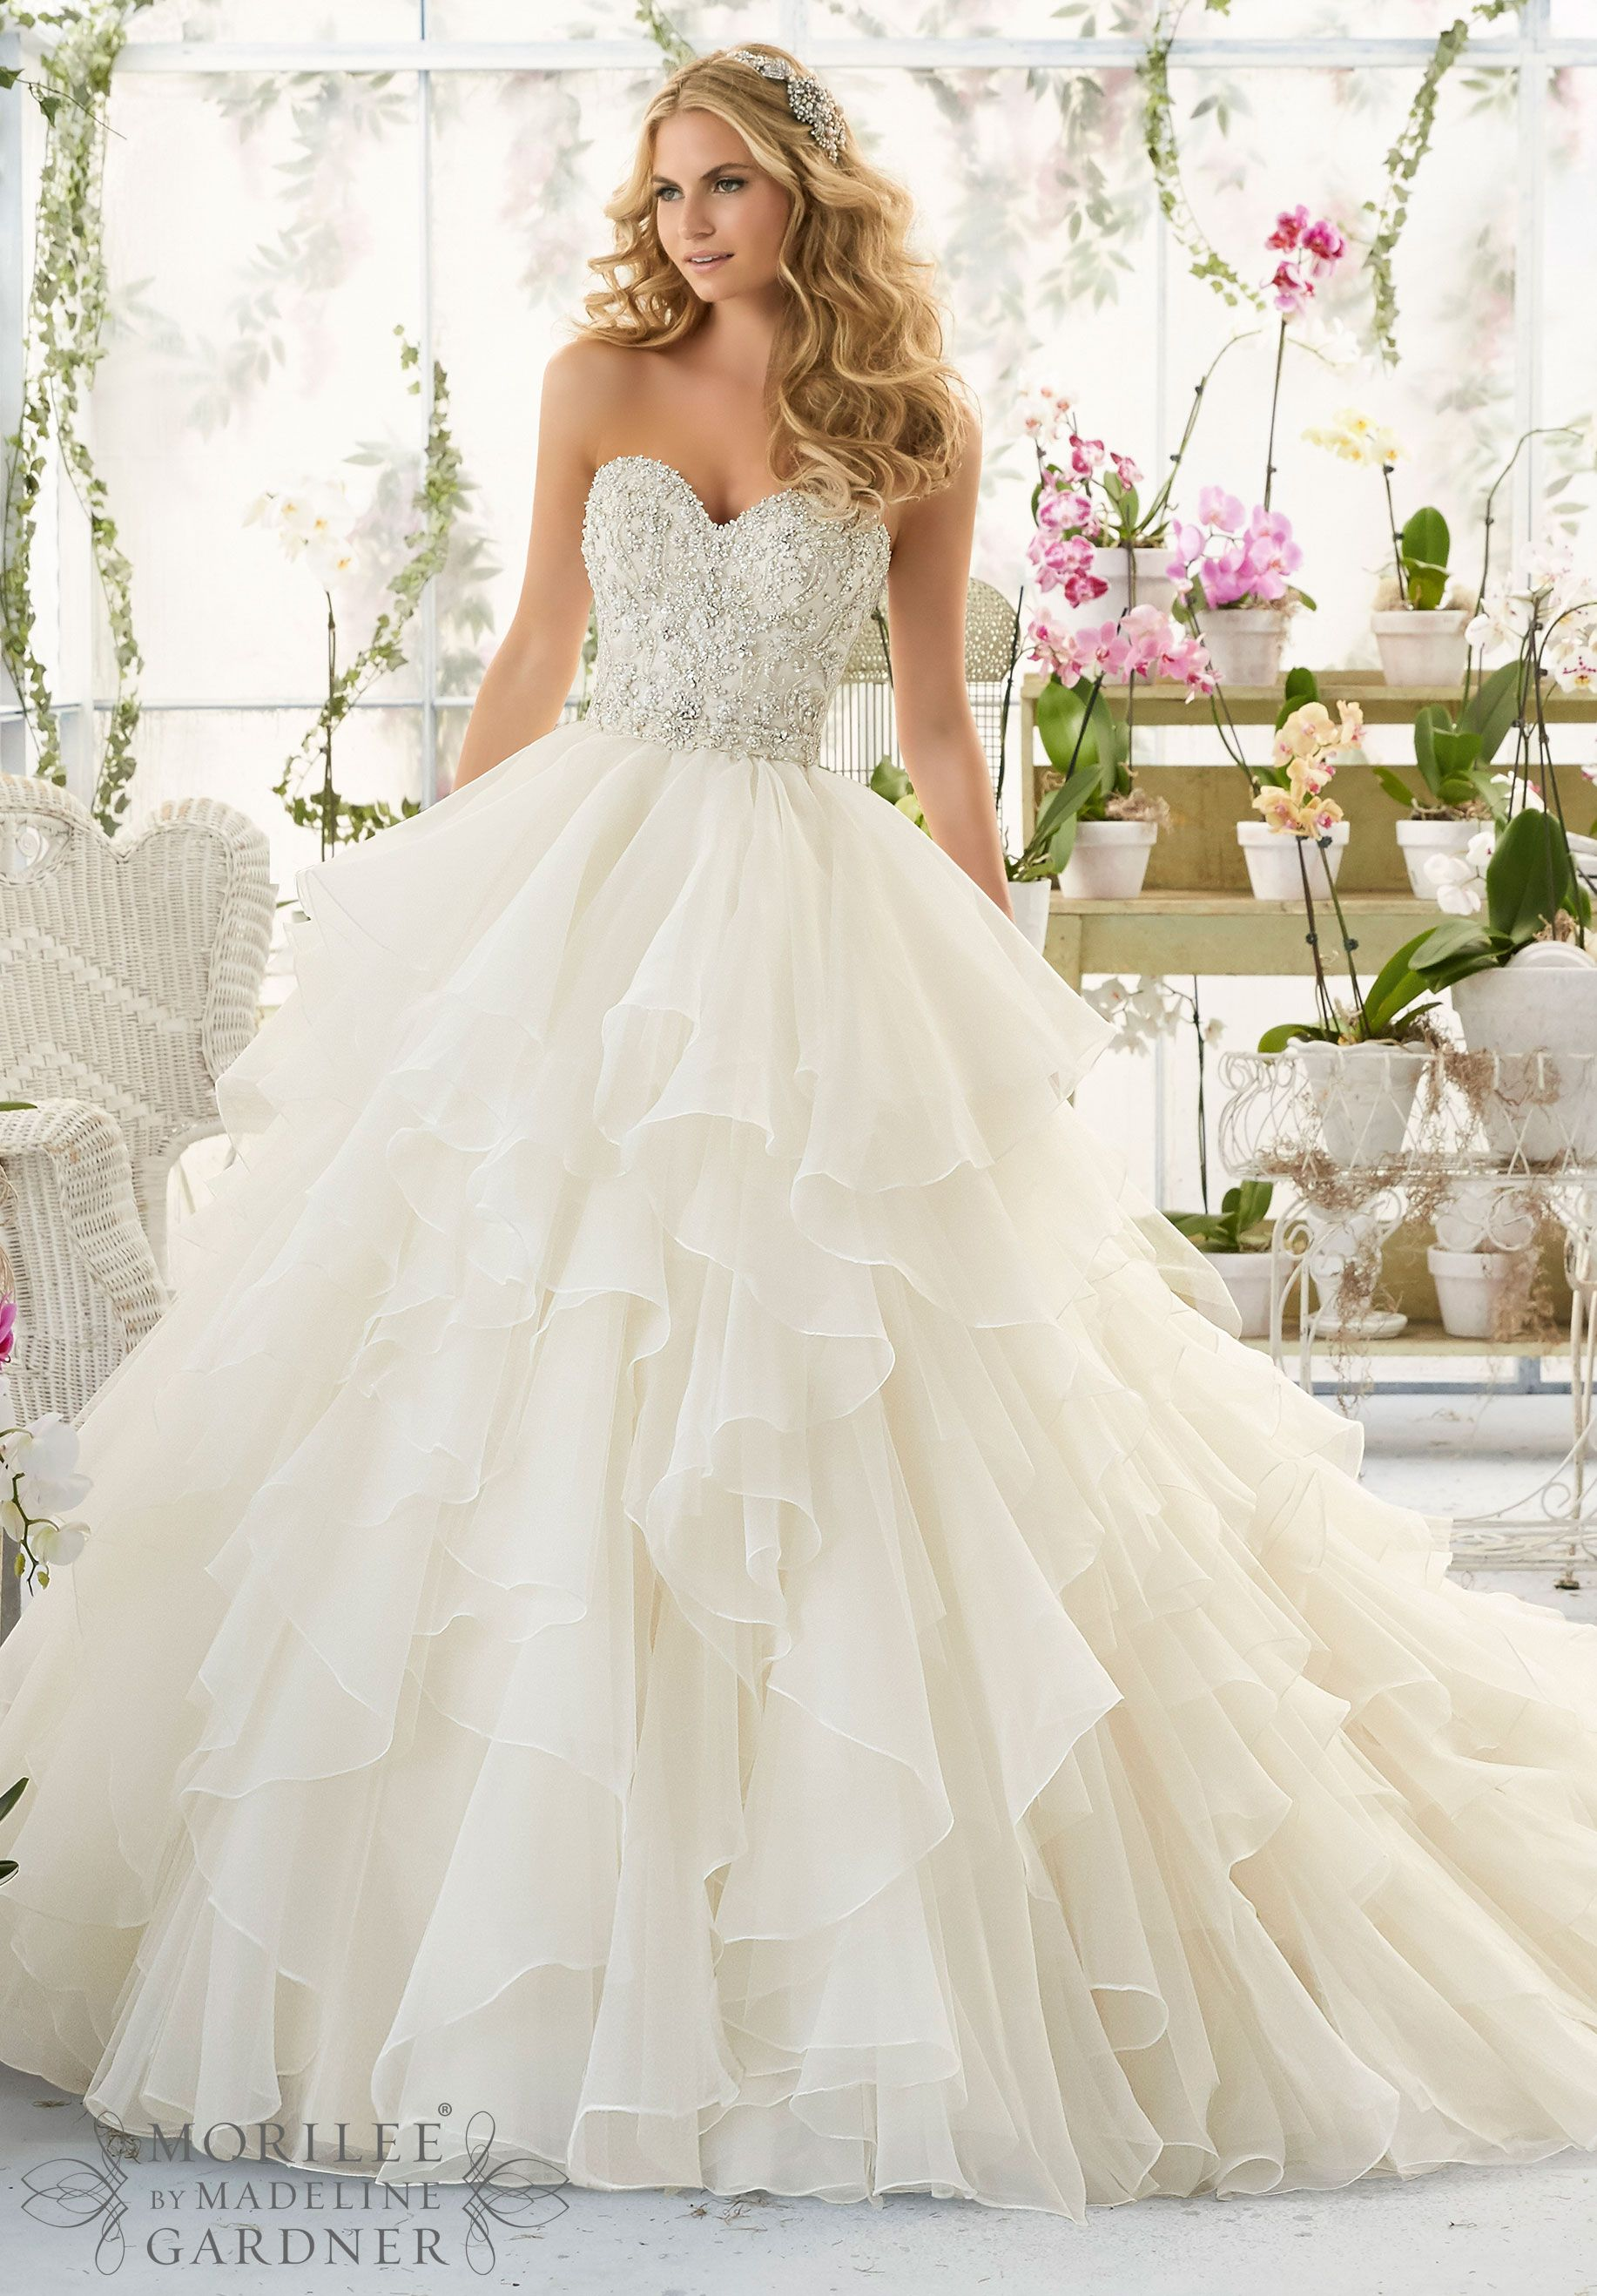 ivory wedding dresses Wedding Dresses and Wedding Gowns by Morilee featuring Intricate Crystal Beaded and Embroidered Bodice onto a